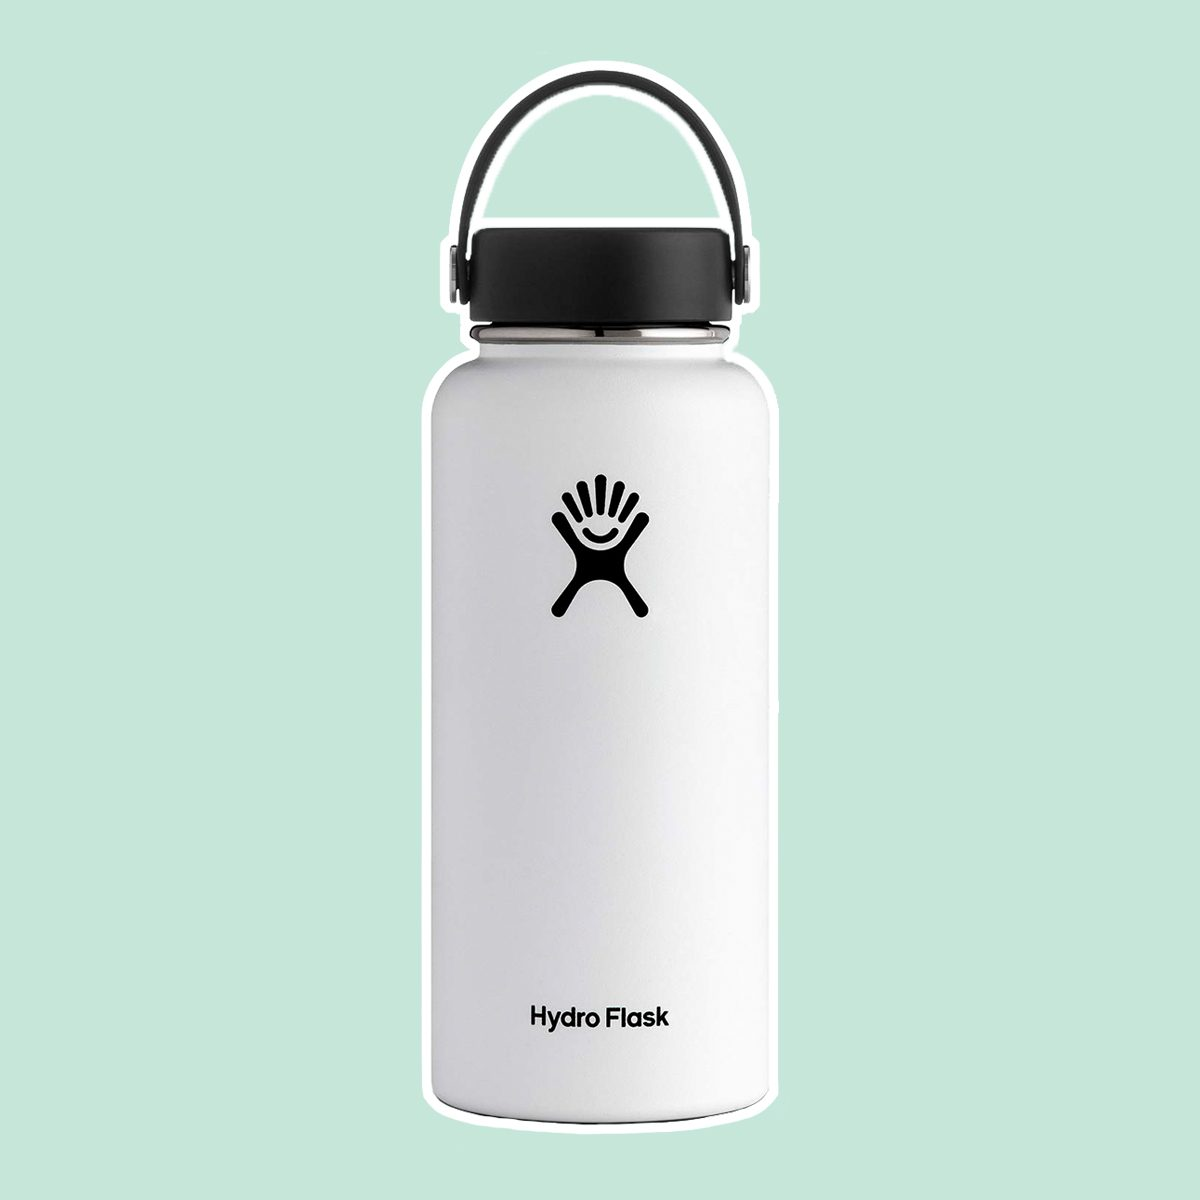 Hydro Flask Water Bottle - Stainless Steel & Vacuum Insulated - Wide Mouth with Leak Proof Flex Cap - 32 oz, White